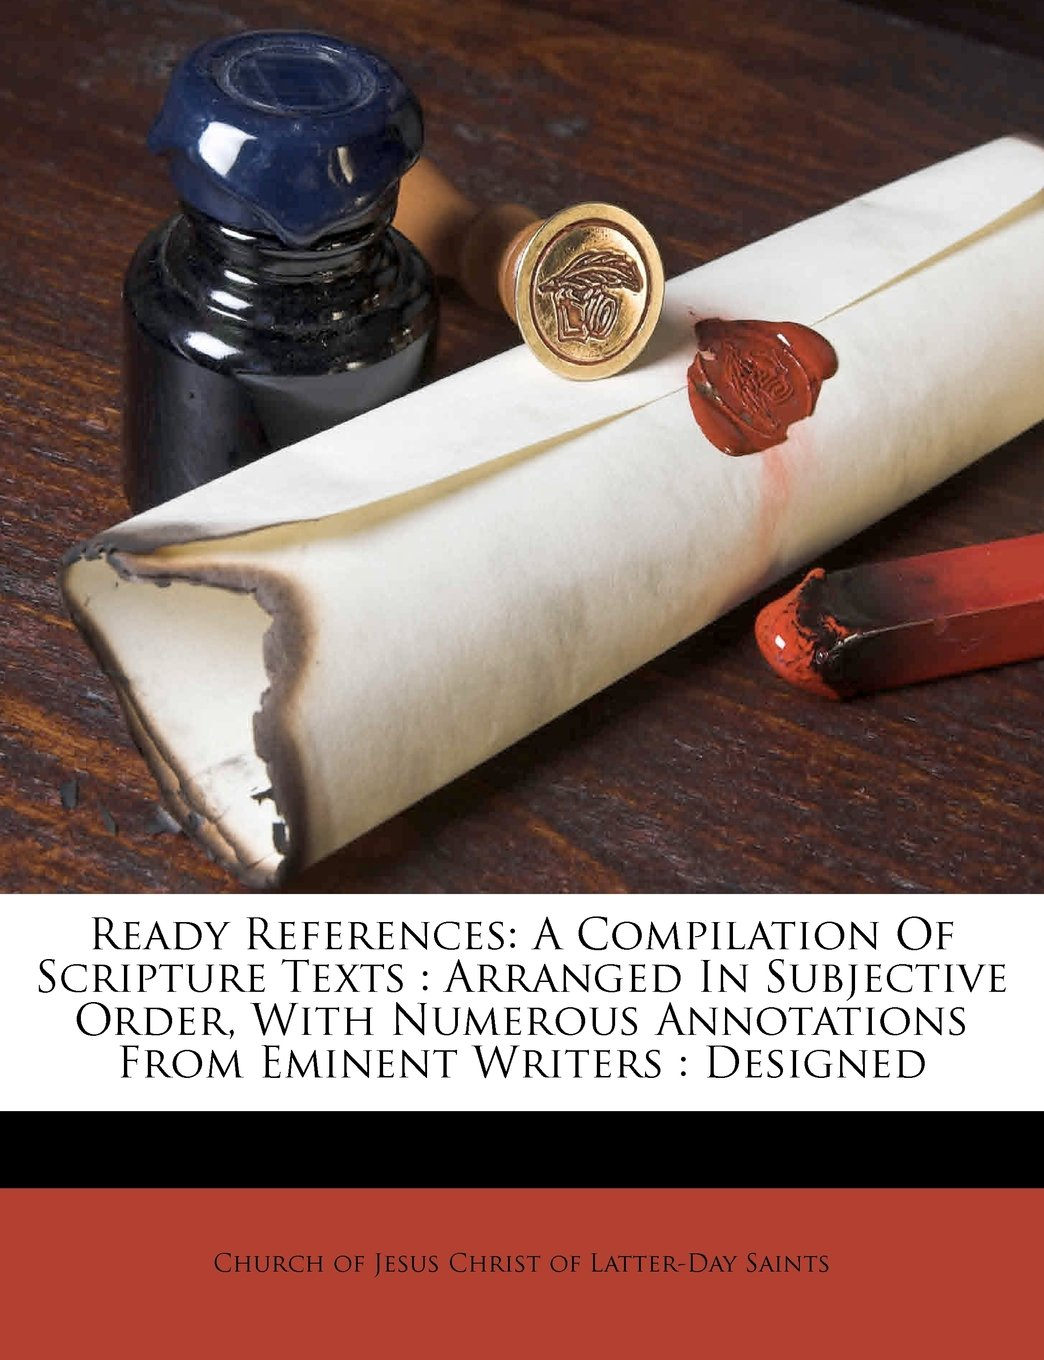 Download Ready References: A Compilation Of Scripture Texts : Arranged In Subjective Order, With Numerous Annotations From Eminent Writers : Designed pdf epub